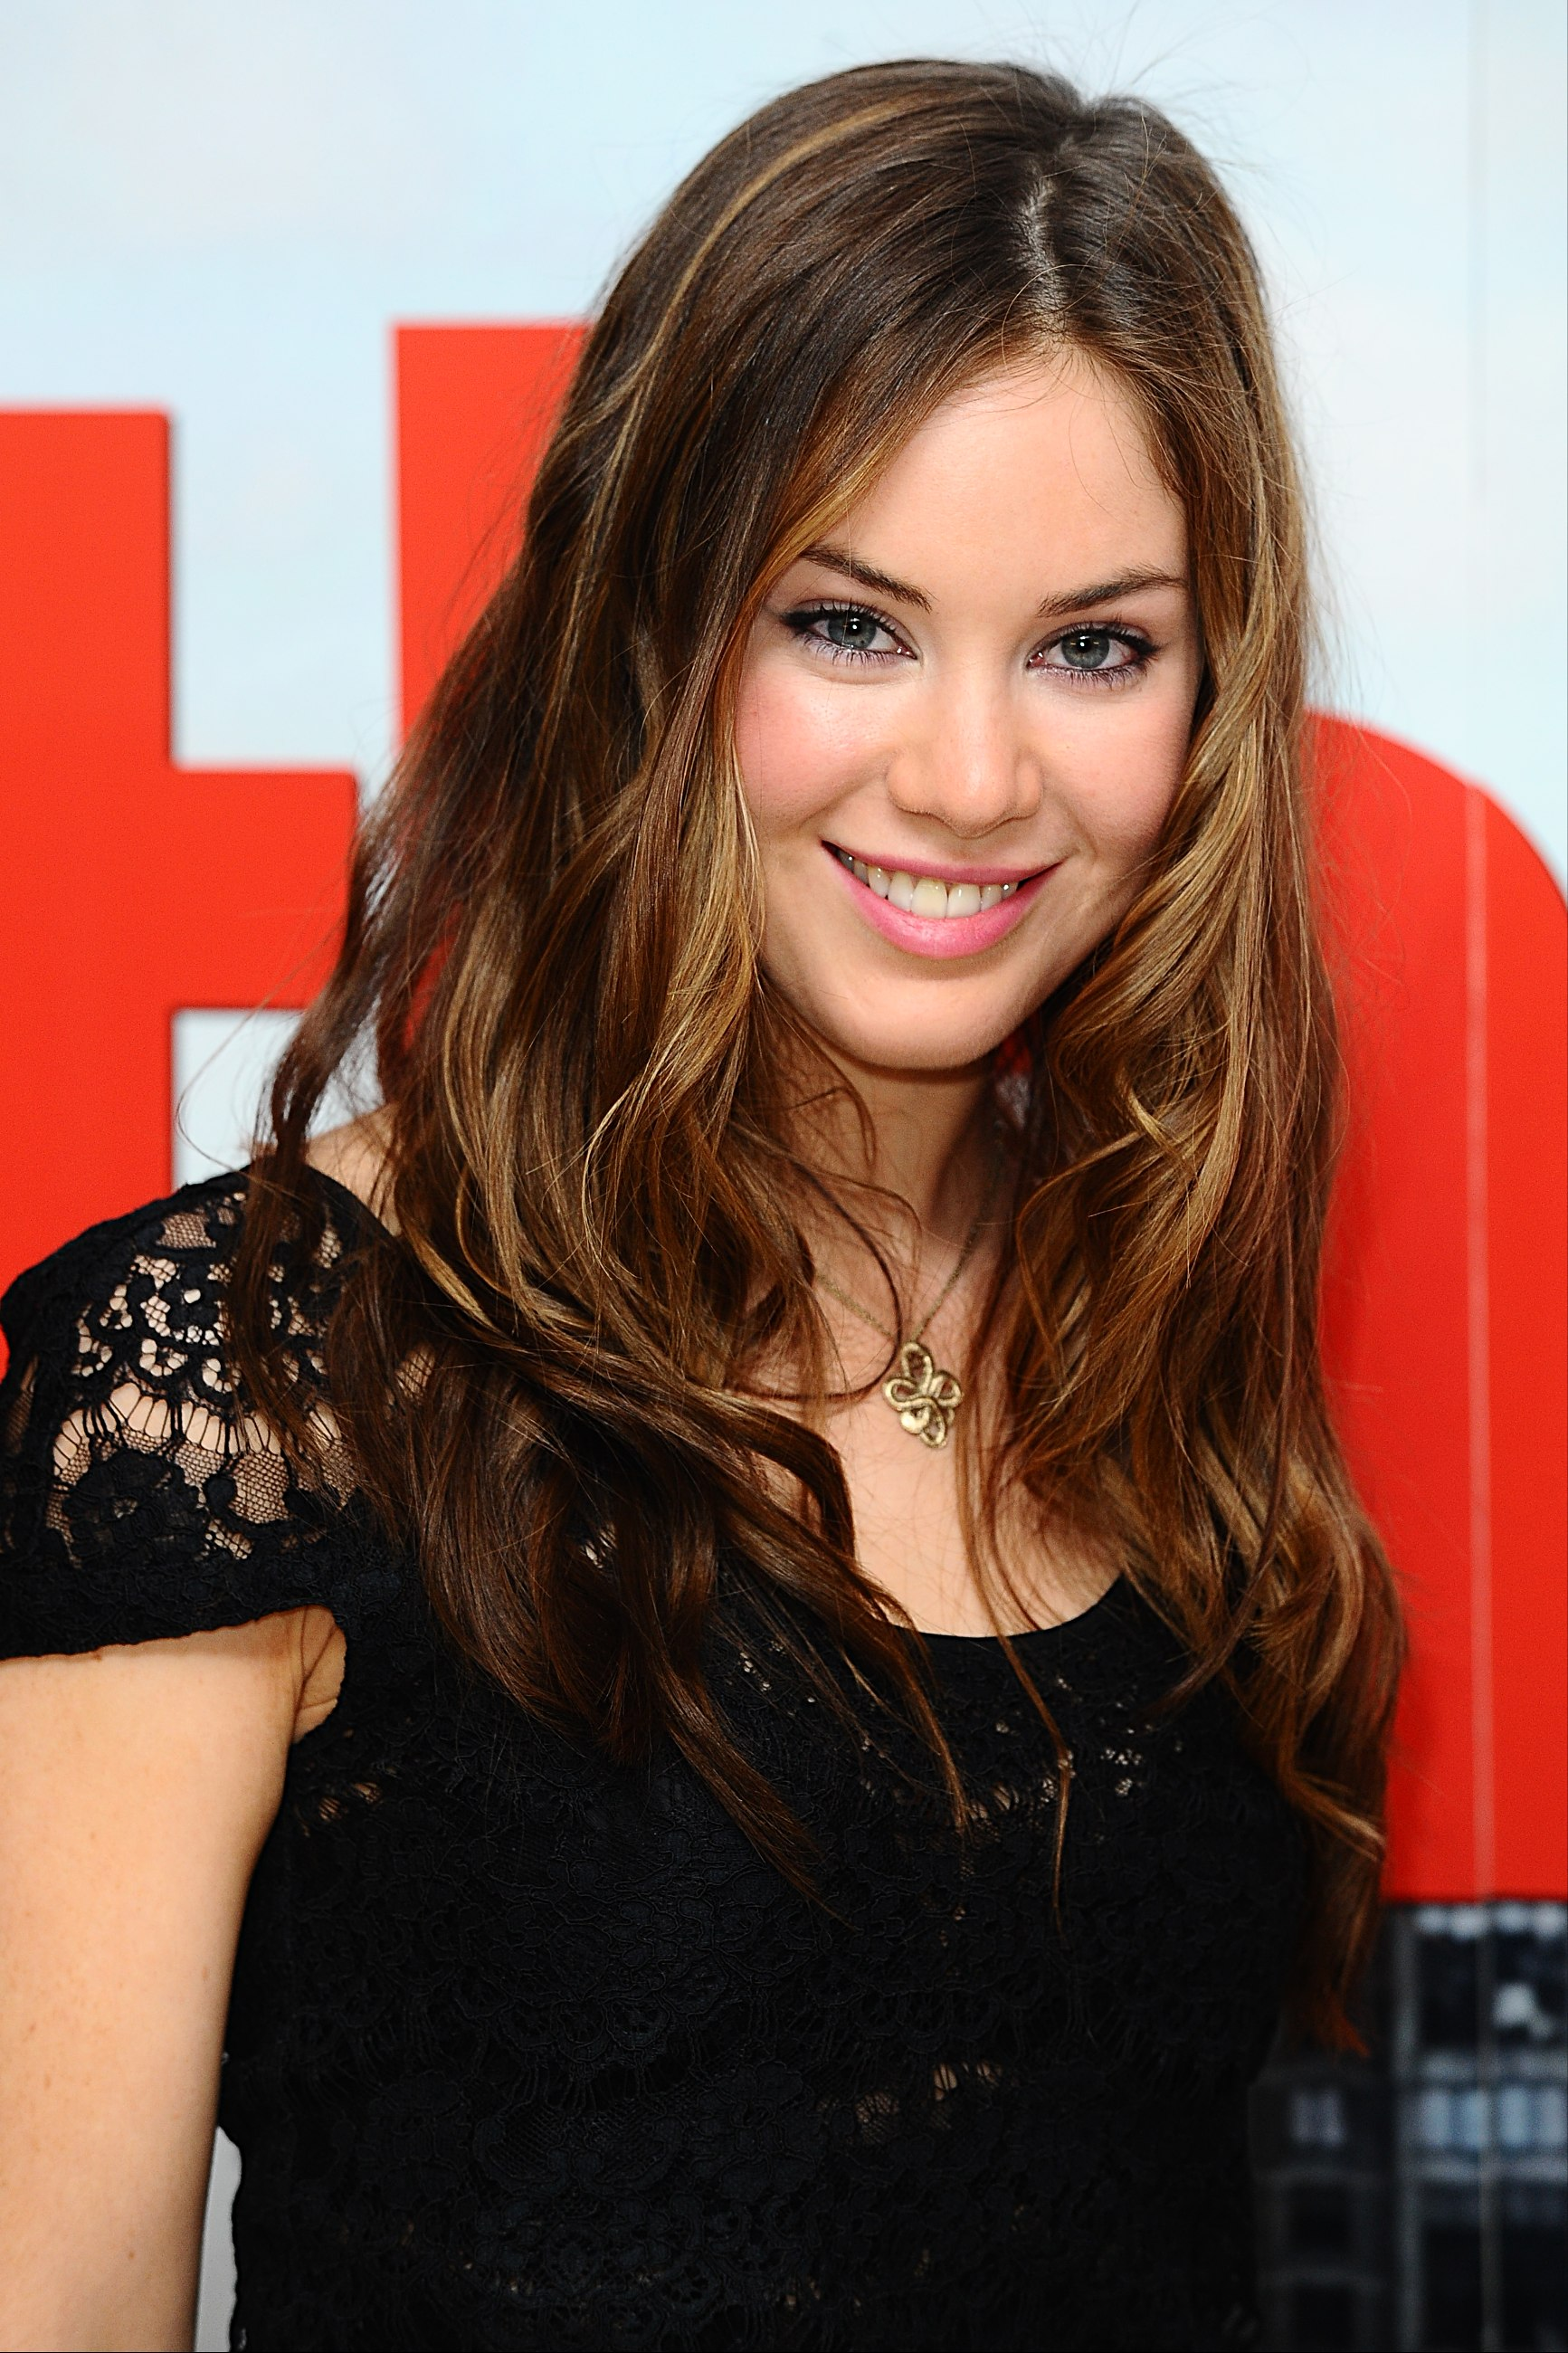 Tips: Roxanne McKee, 2017 Alternative Haarstil. Beruf: php echo $profession_label; ?>